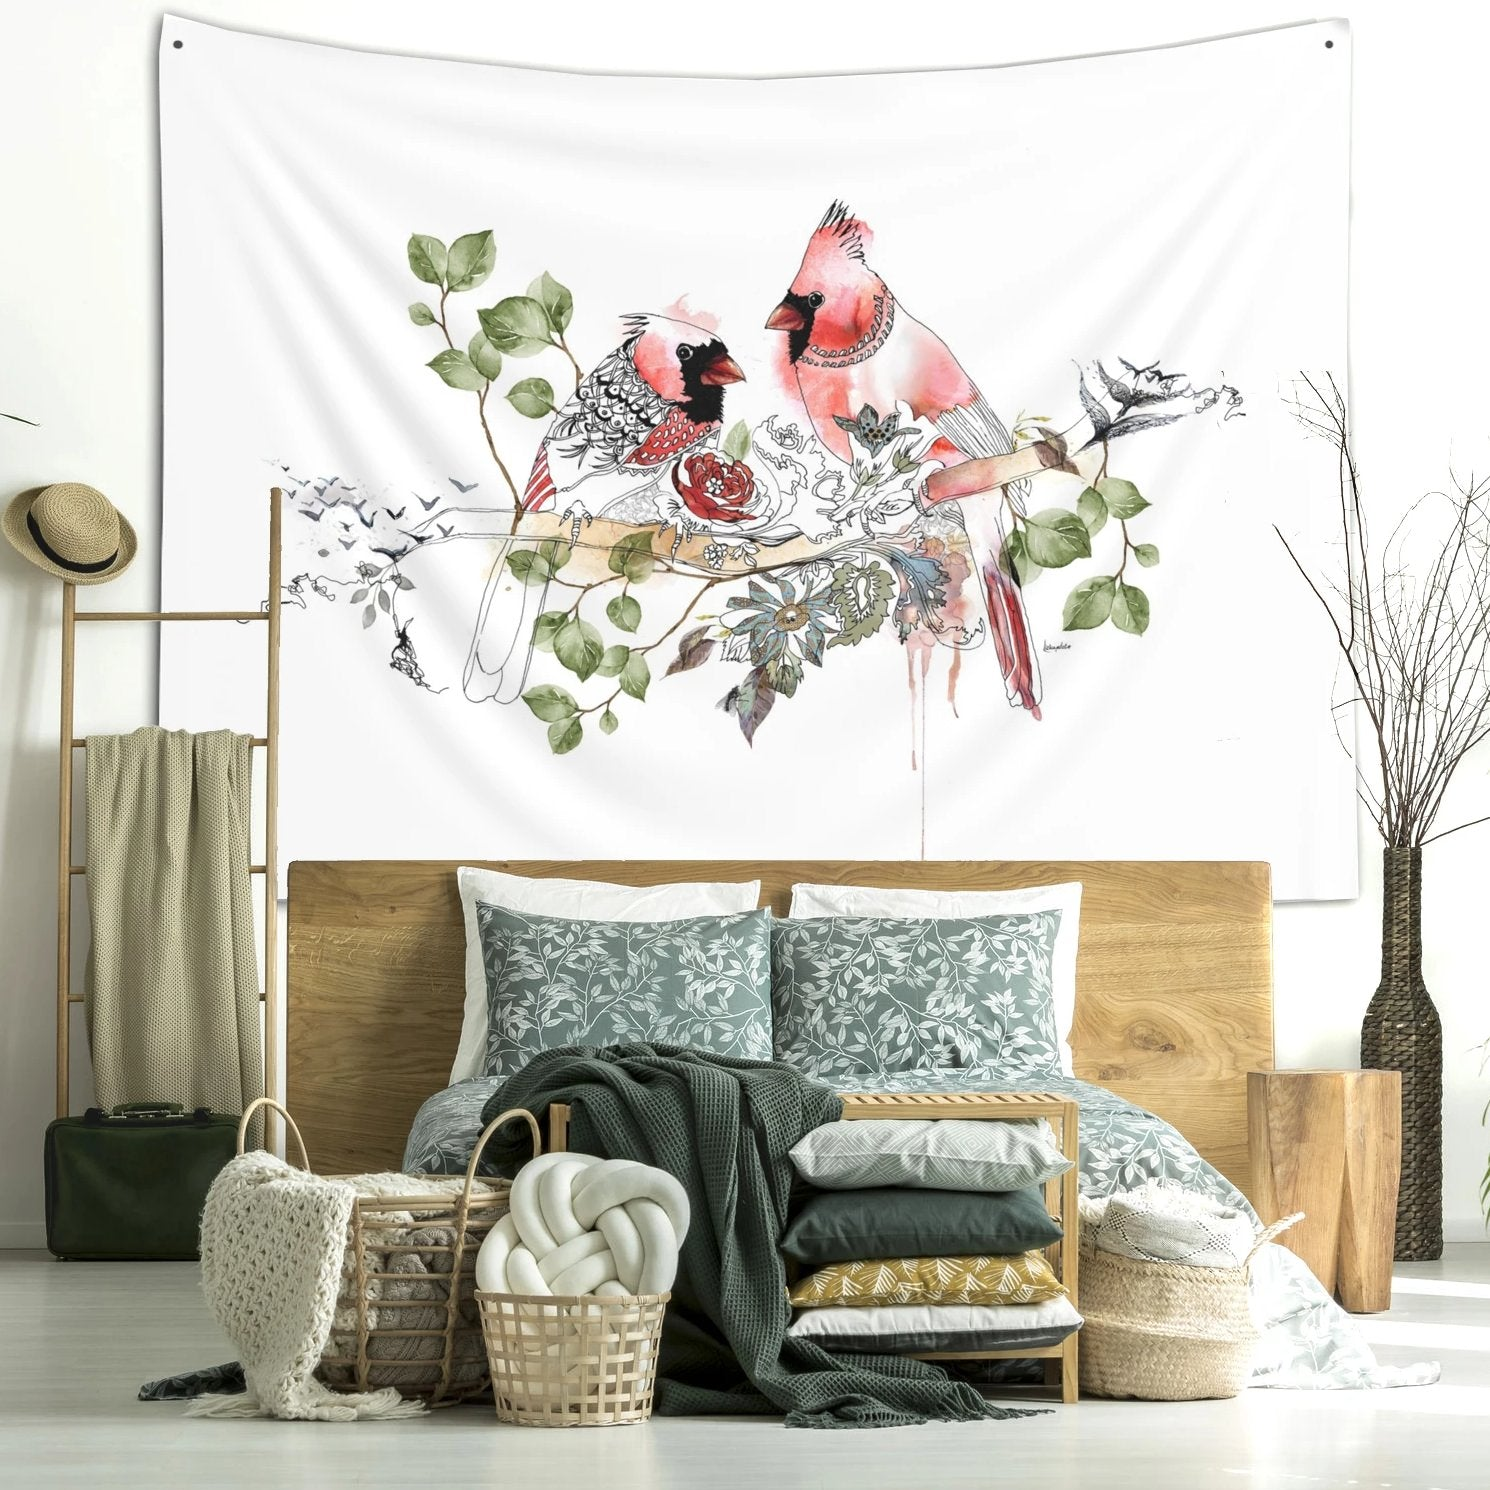 Cardinal wall tapestry hanged on a wall in a boho bedroom | Liz Kapiloto Art & Design